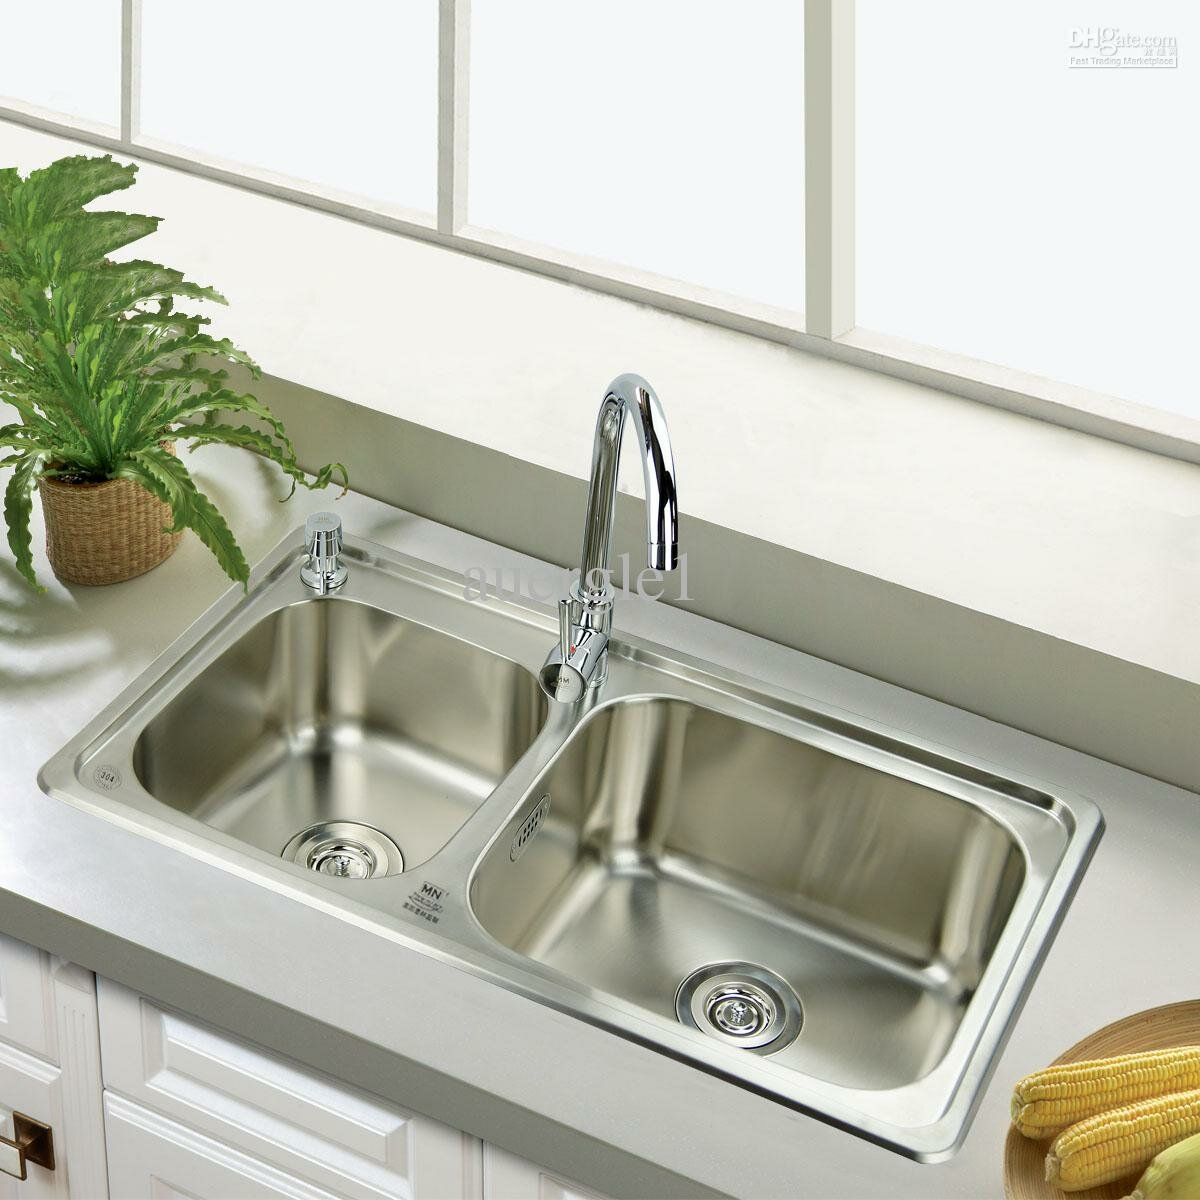 Cozy Kitchen Sinks Stainless Steel for Traditional Kitchen Design: Single Stainless Steel Kitchen Sink | Ss Sinks | Kitchen Sinks Stainless Steel